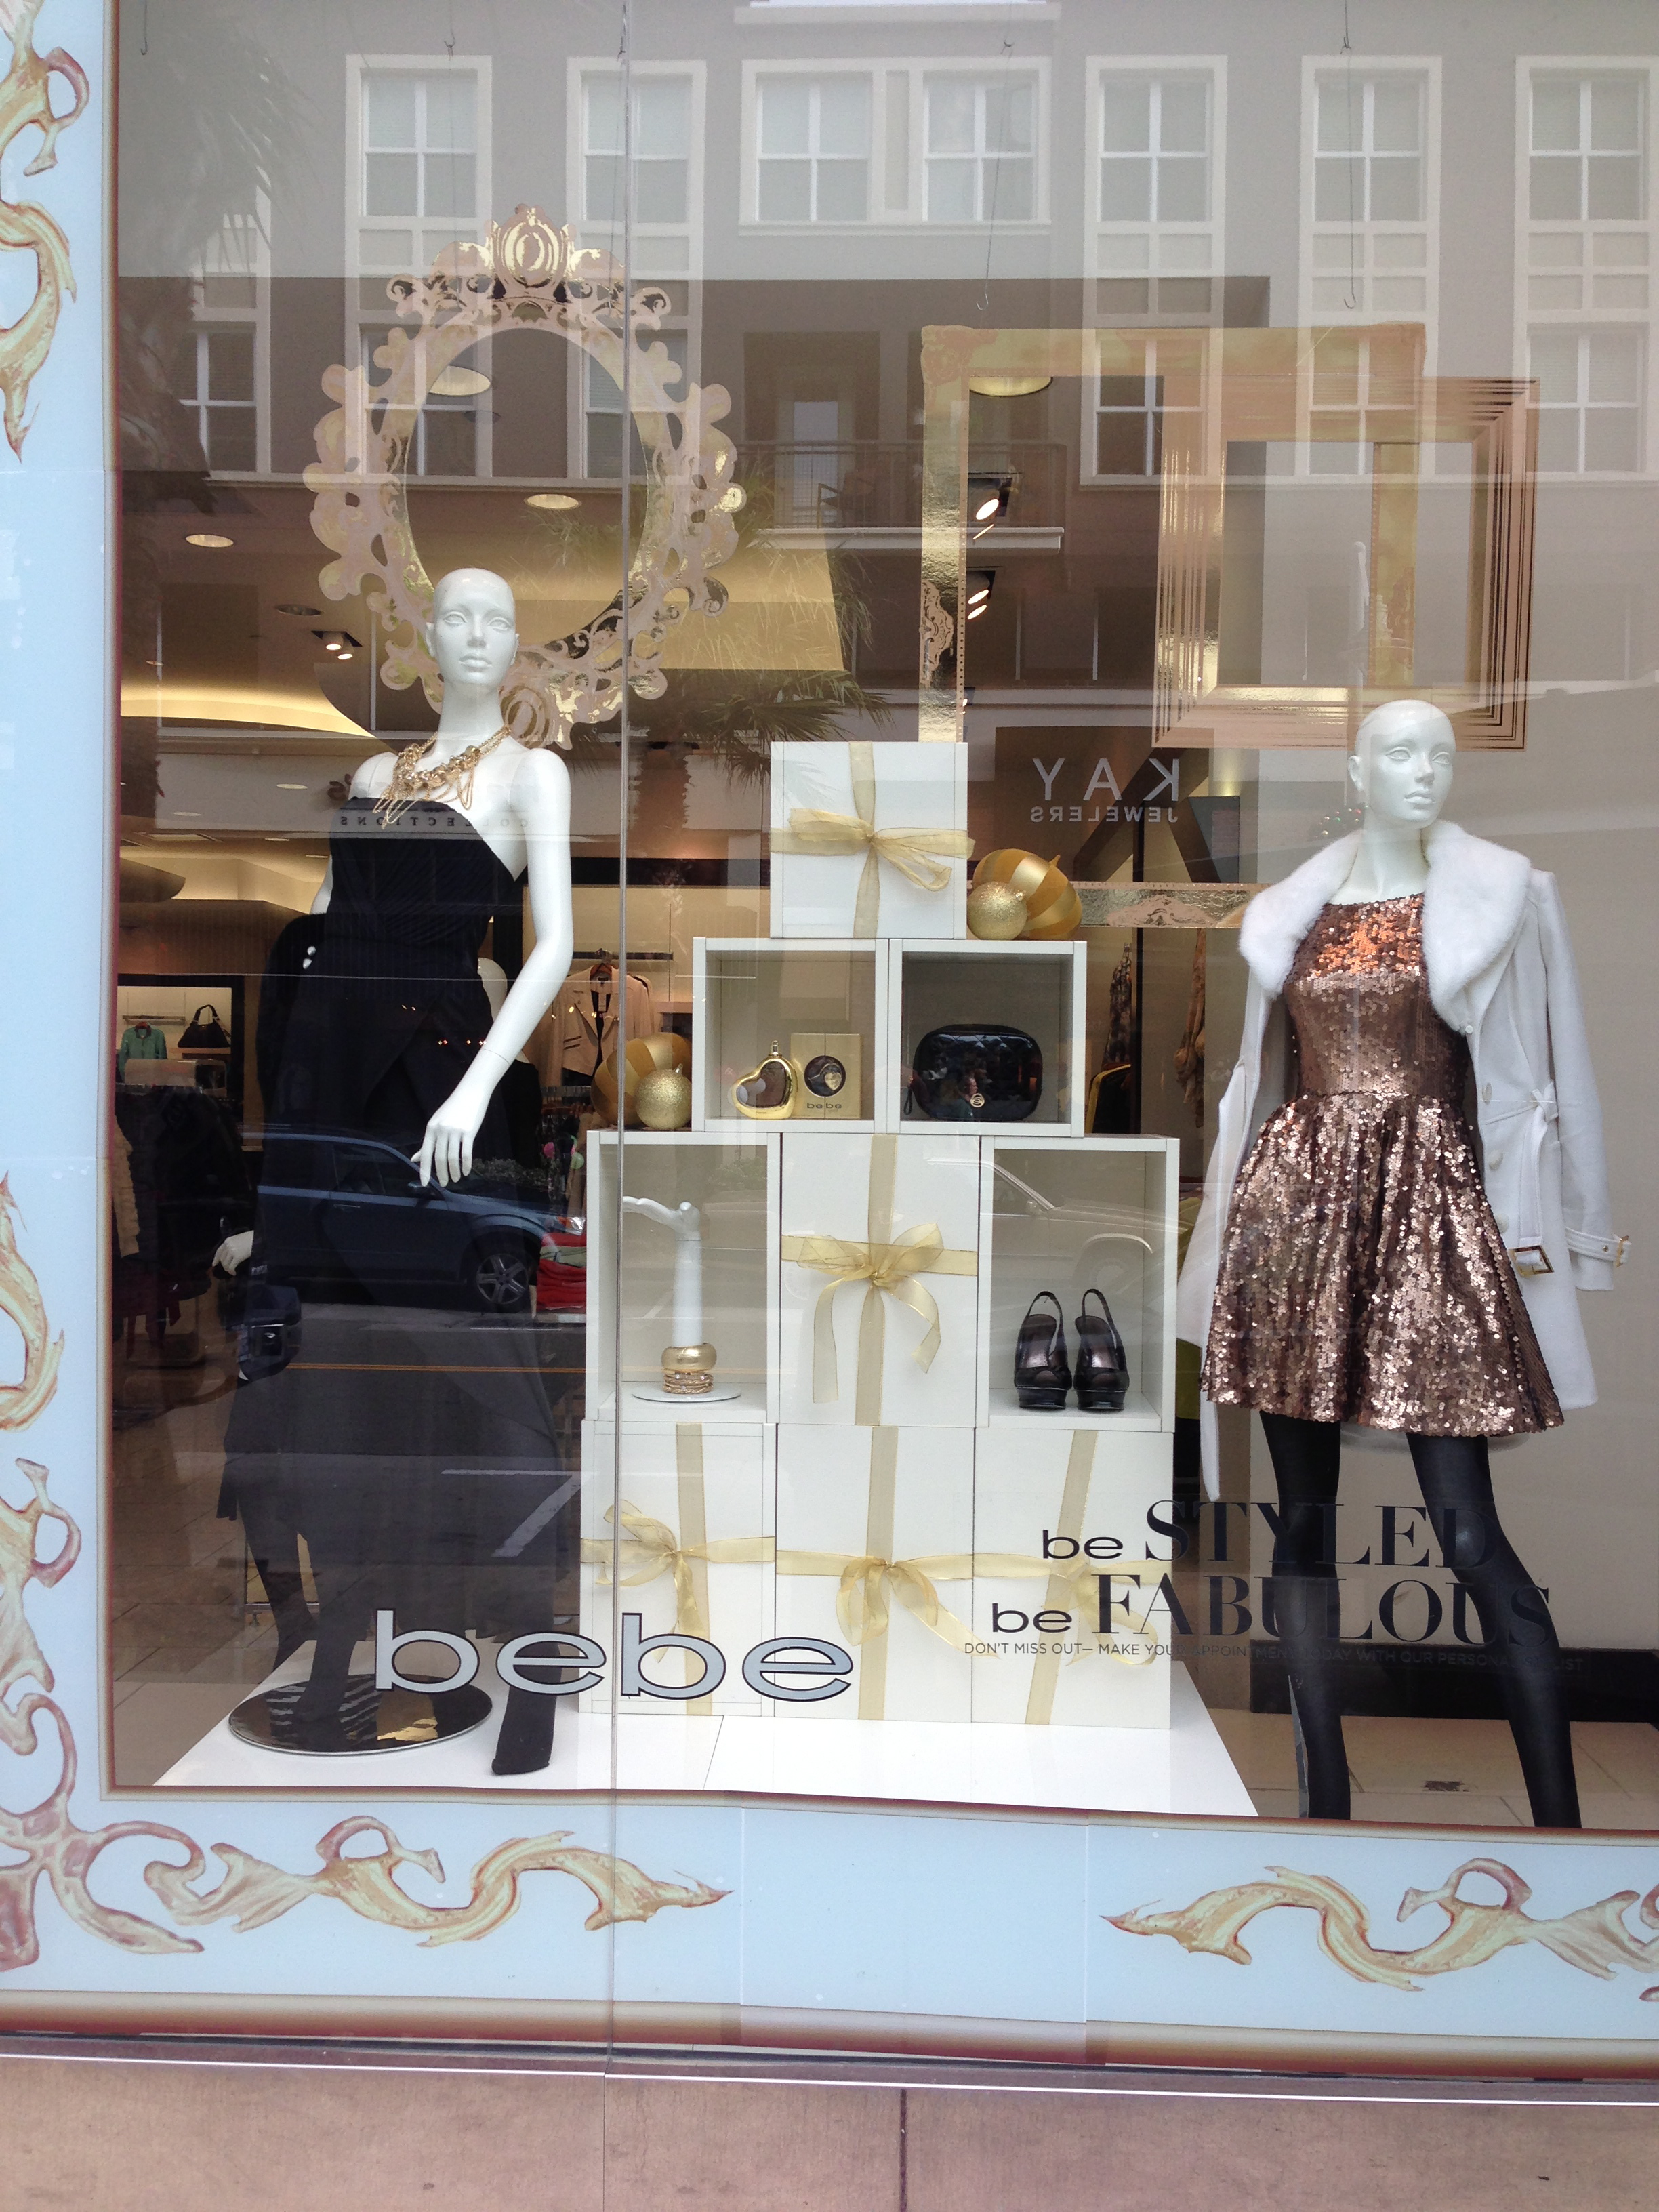 Budget friendly holiday window display for retailers idea for Retail store window display ideas